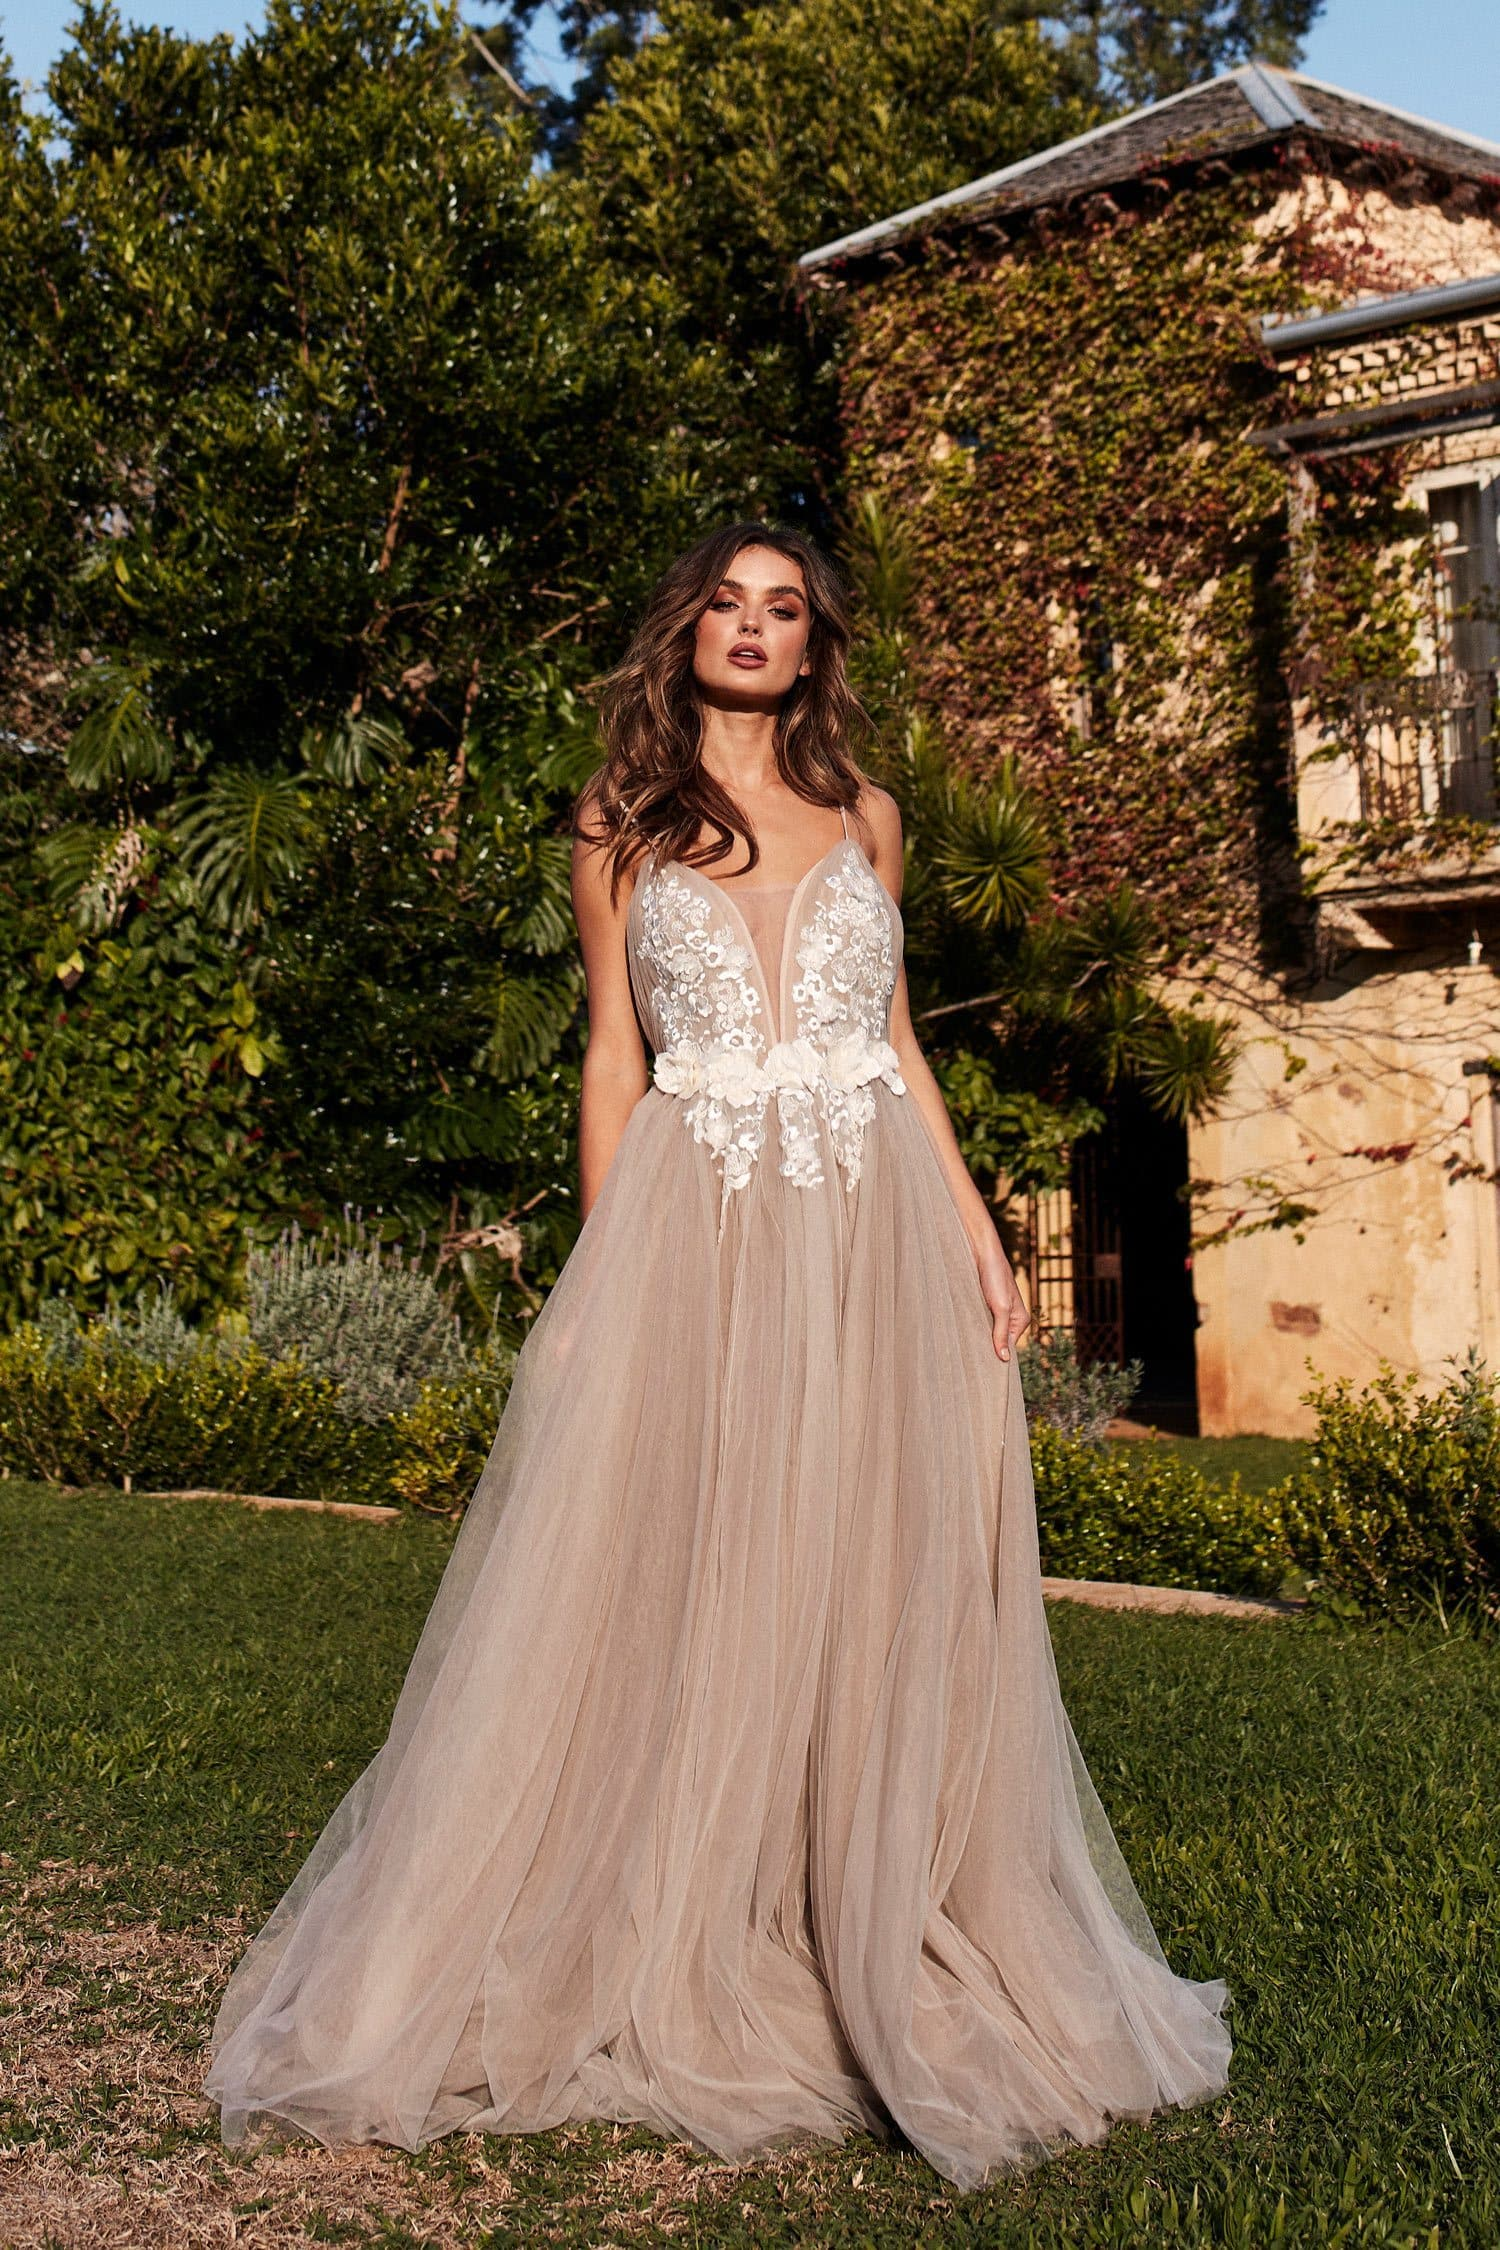 A&N Zendaya - Nude Backless Tulle Bridal Gown with Open Back Gown